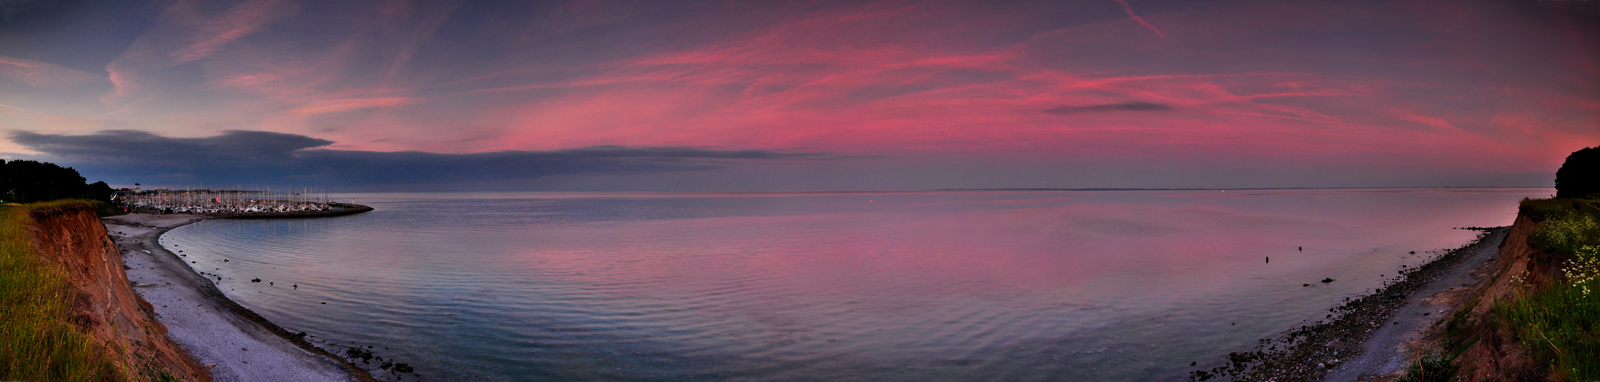 Big Baltic Sea sunset Panorama by Bull04